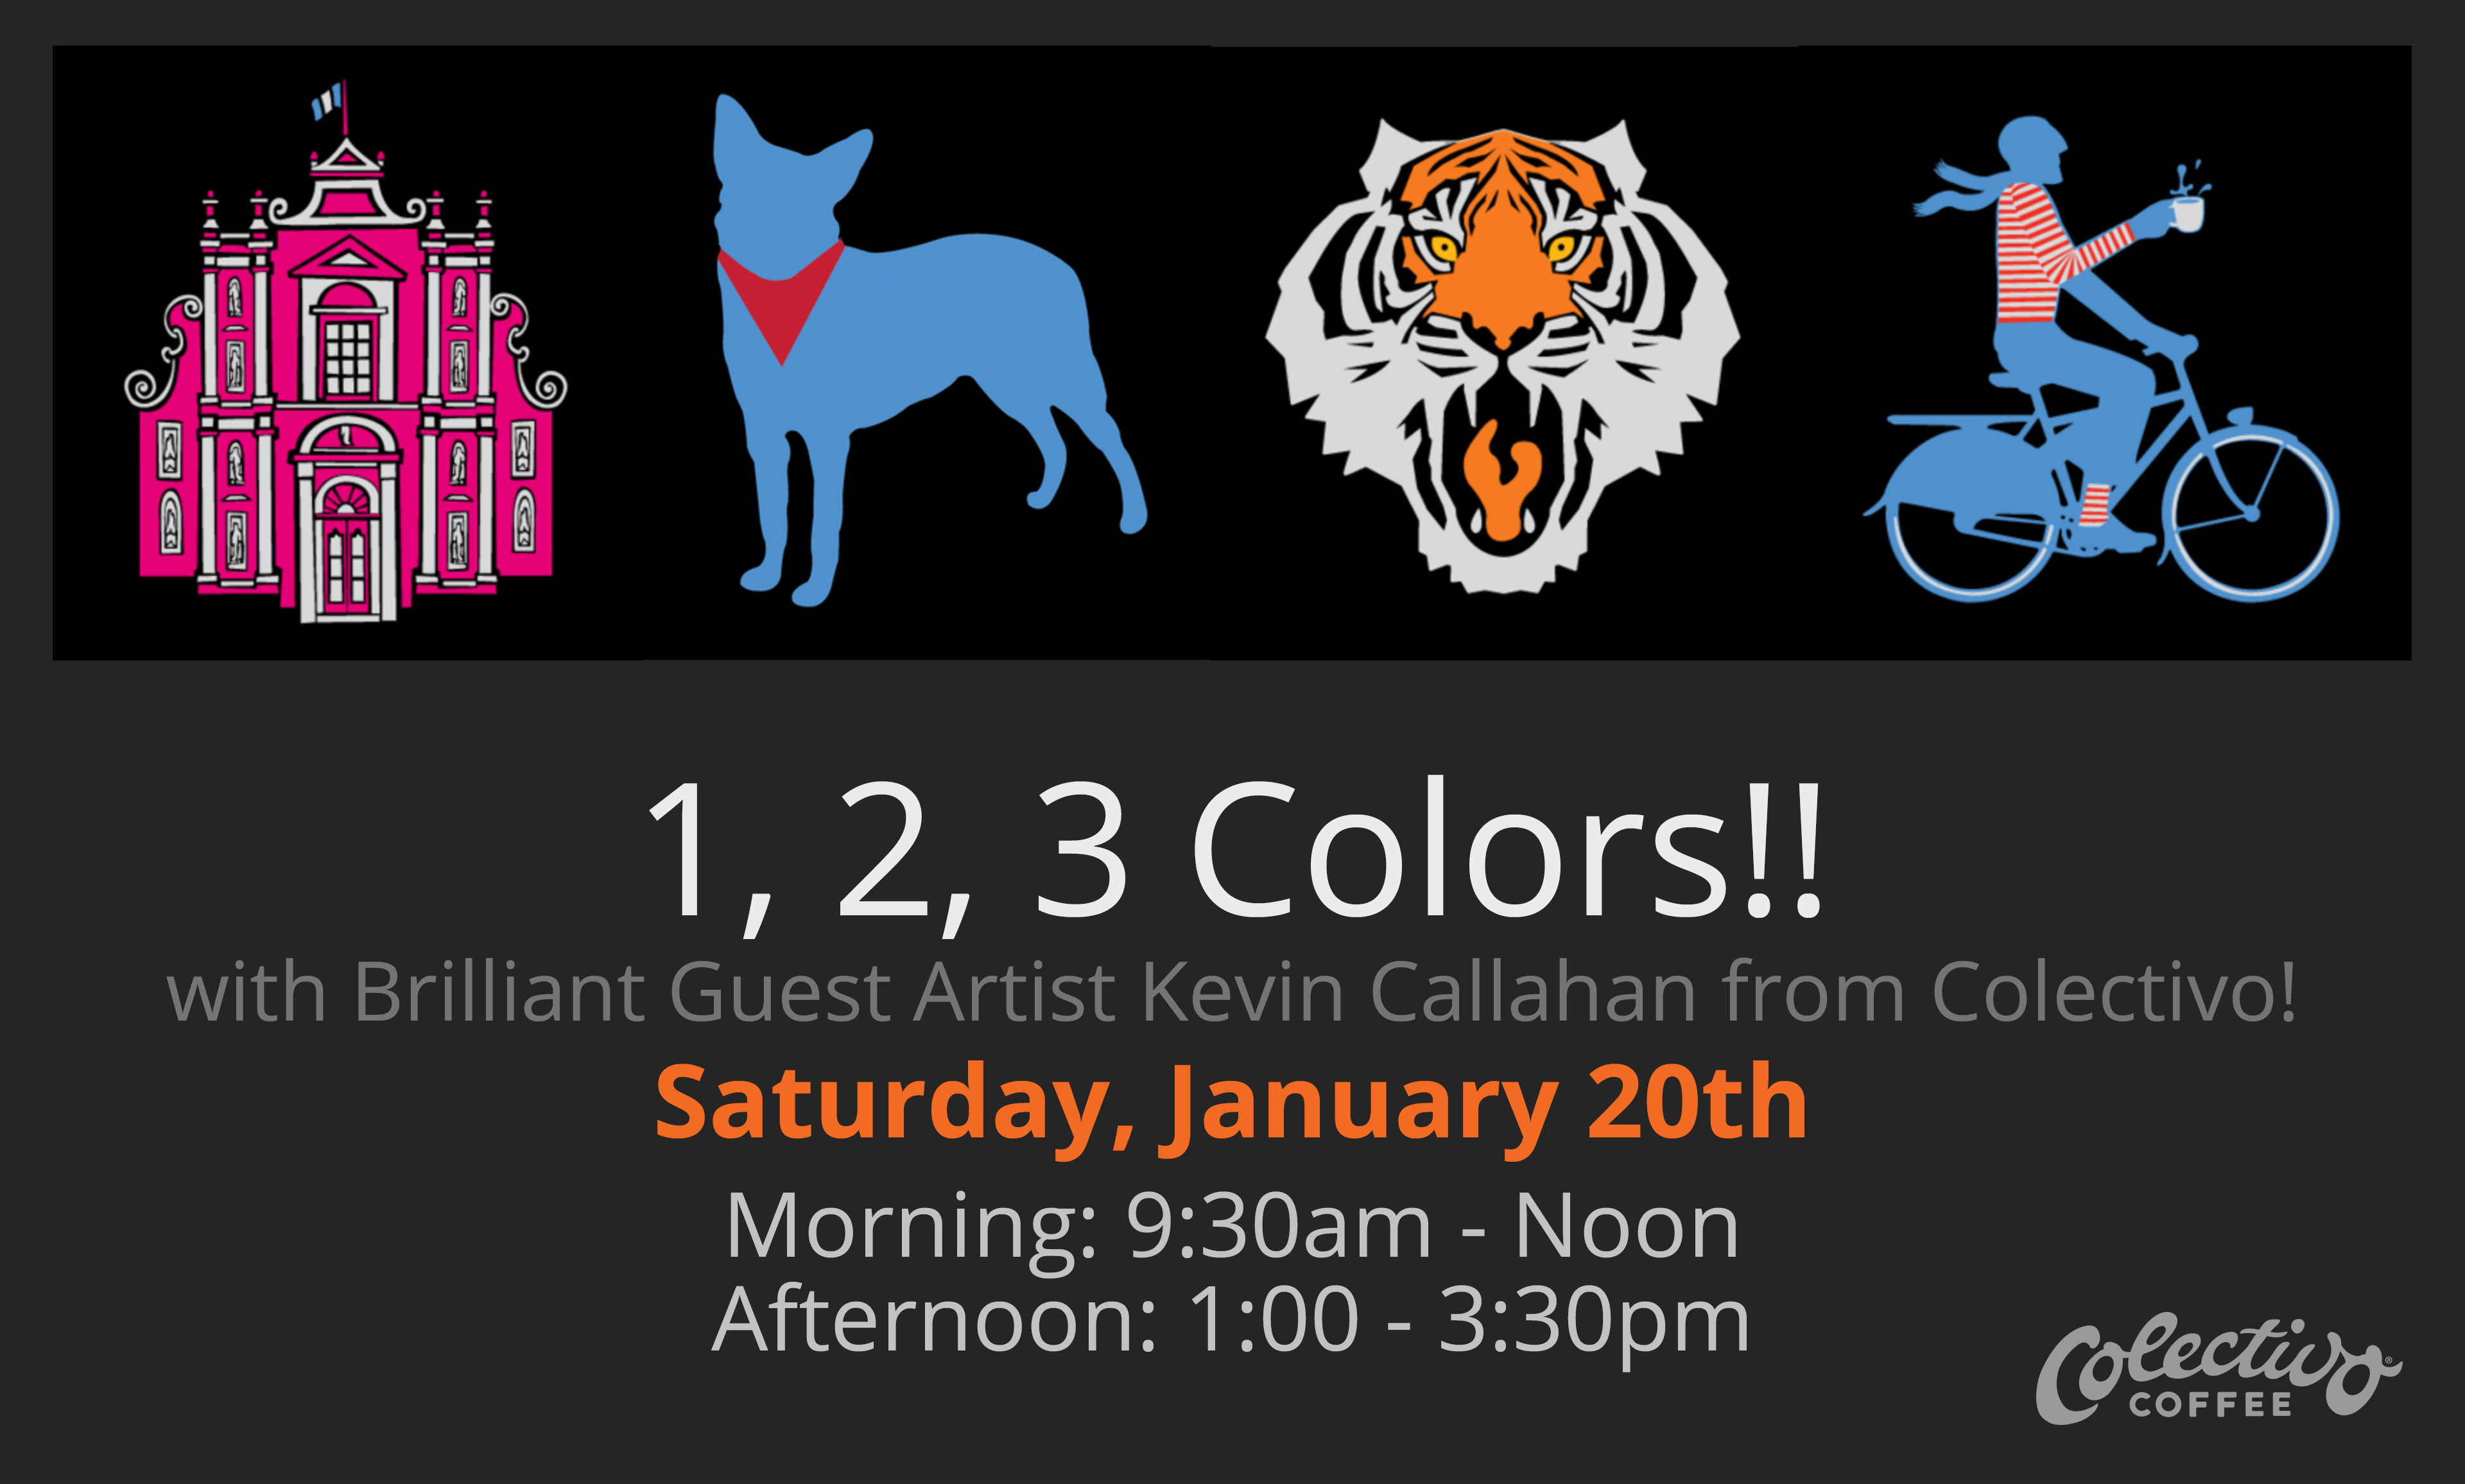 1, 2, 3 Colors!! with Brilliant Guest Artist Kevin Callahan!